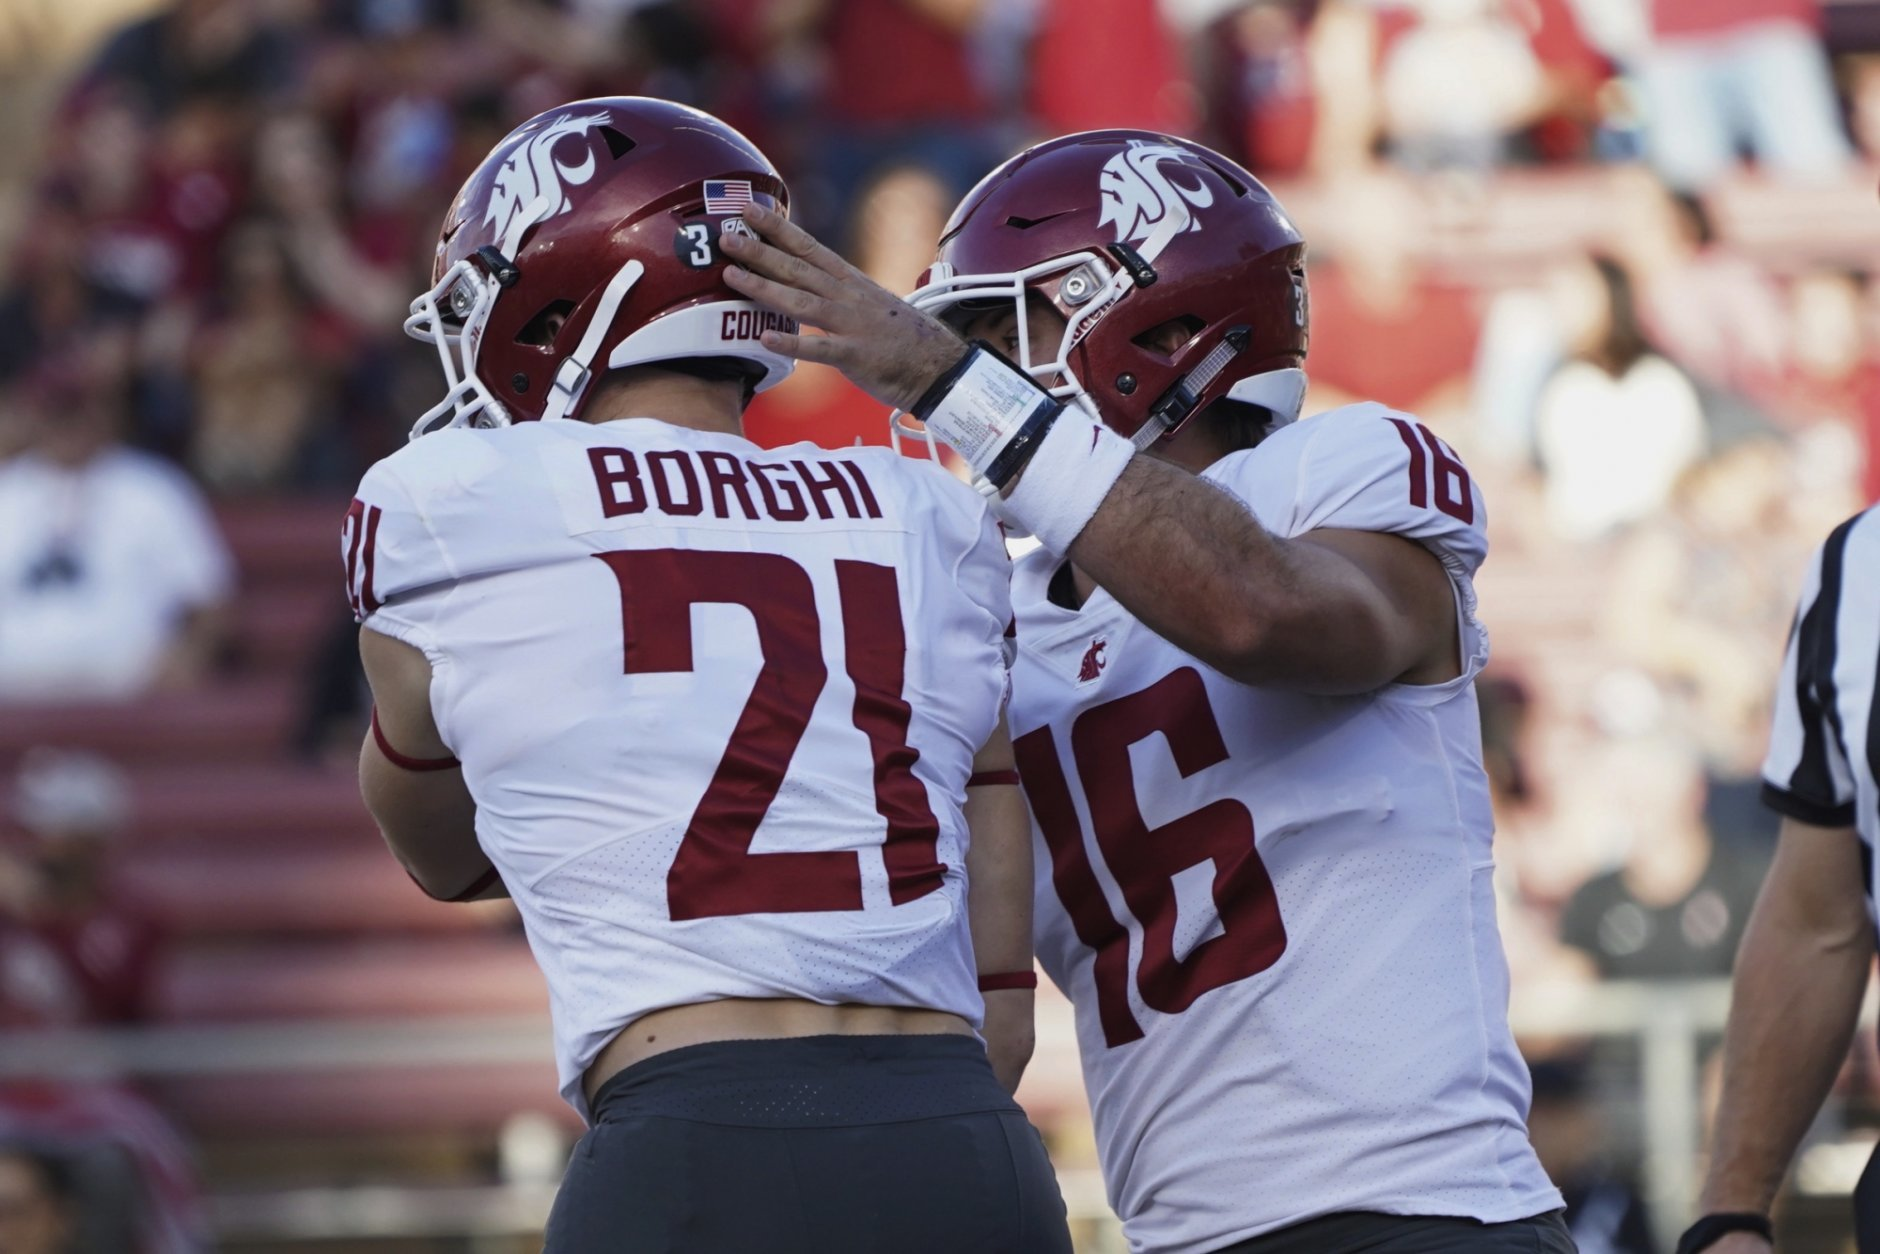 Washington State running back Max Borghi celebrates with quarterback Gardner Minshew II after scoring a touchdown in the first half against Stanford during an NCAA college football game on Saturday, Oct. 27, 2018, in Stanford, Calif. (AP Photo/Don Feria)